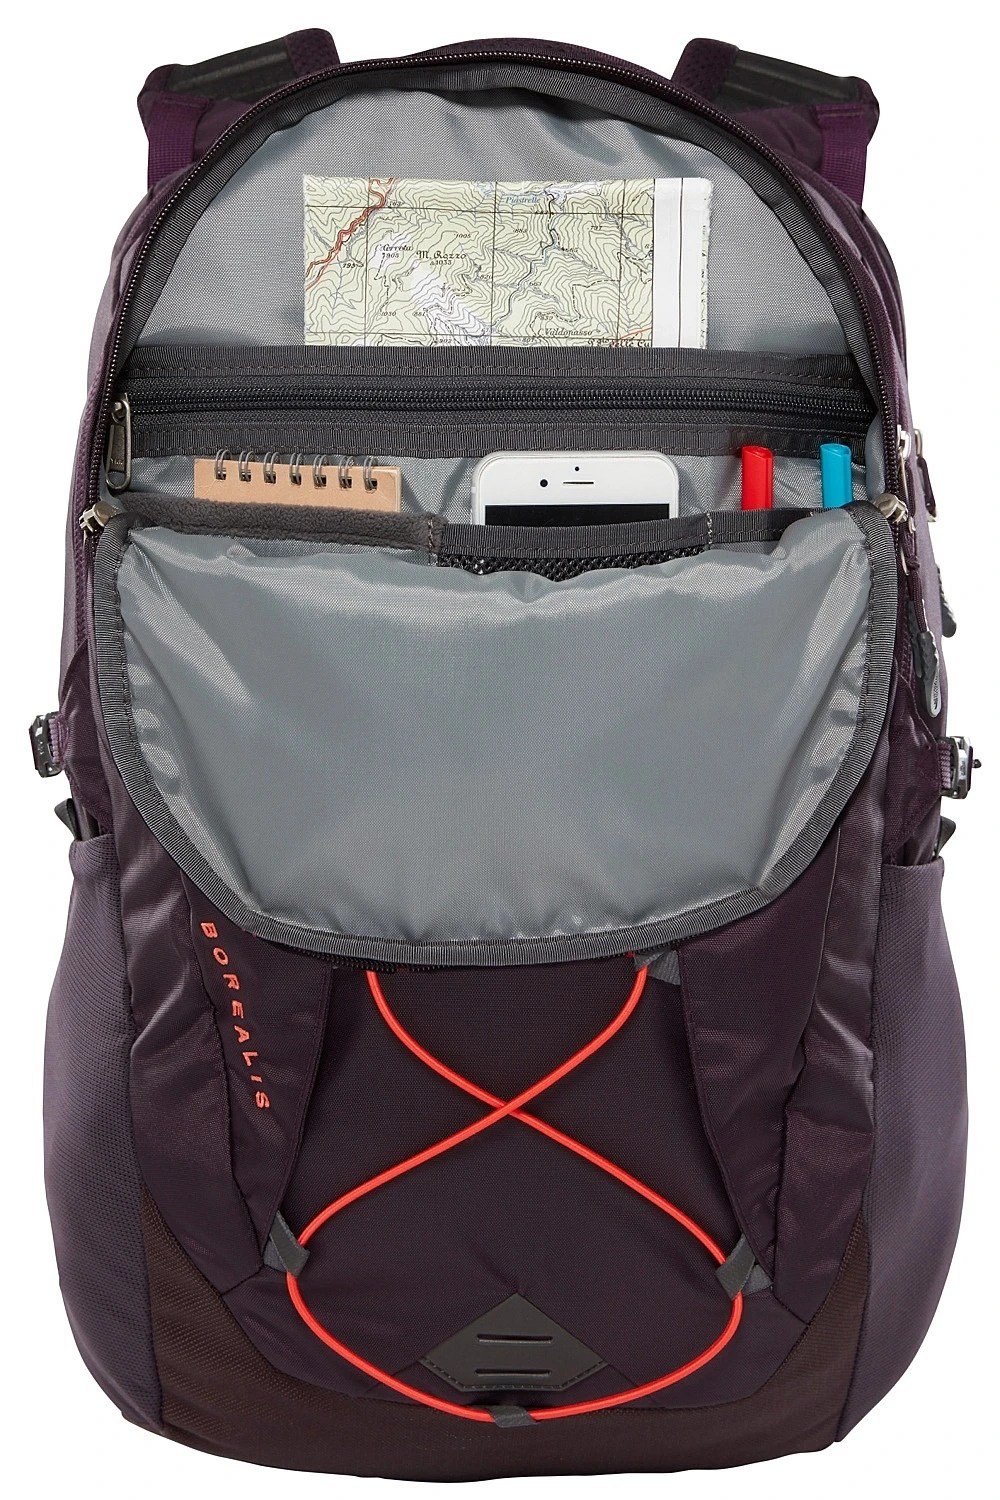 backpack The North Face Borealis 27 - Galaxy Purple/Juicy ...